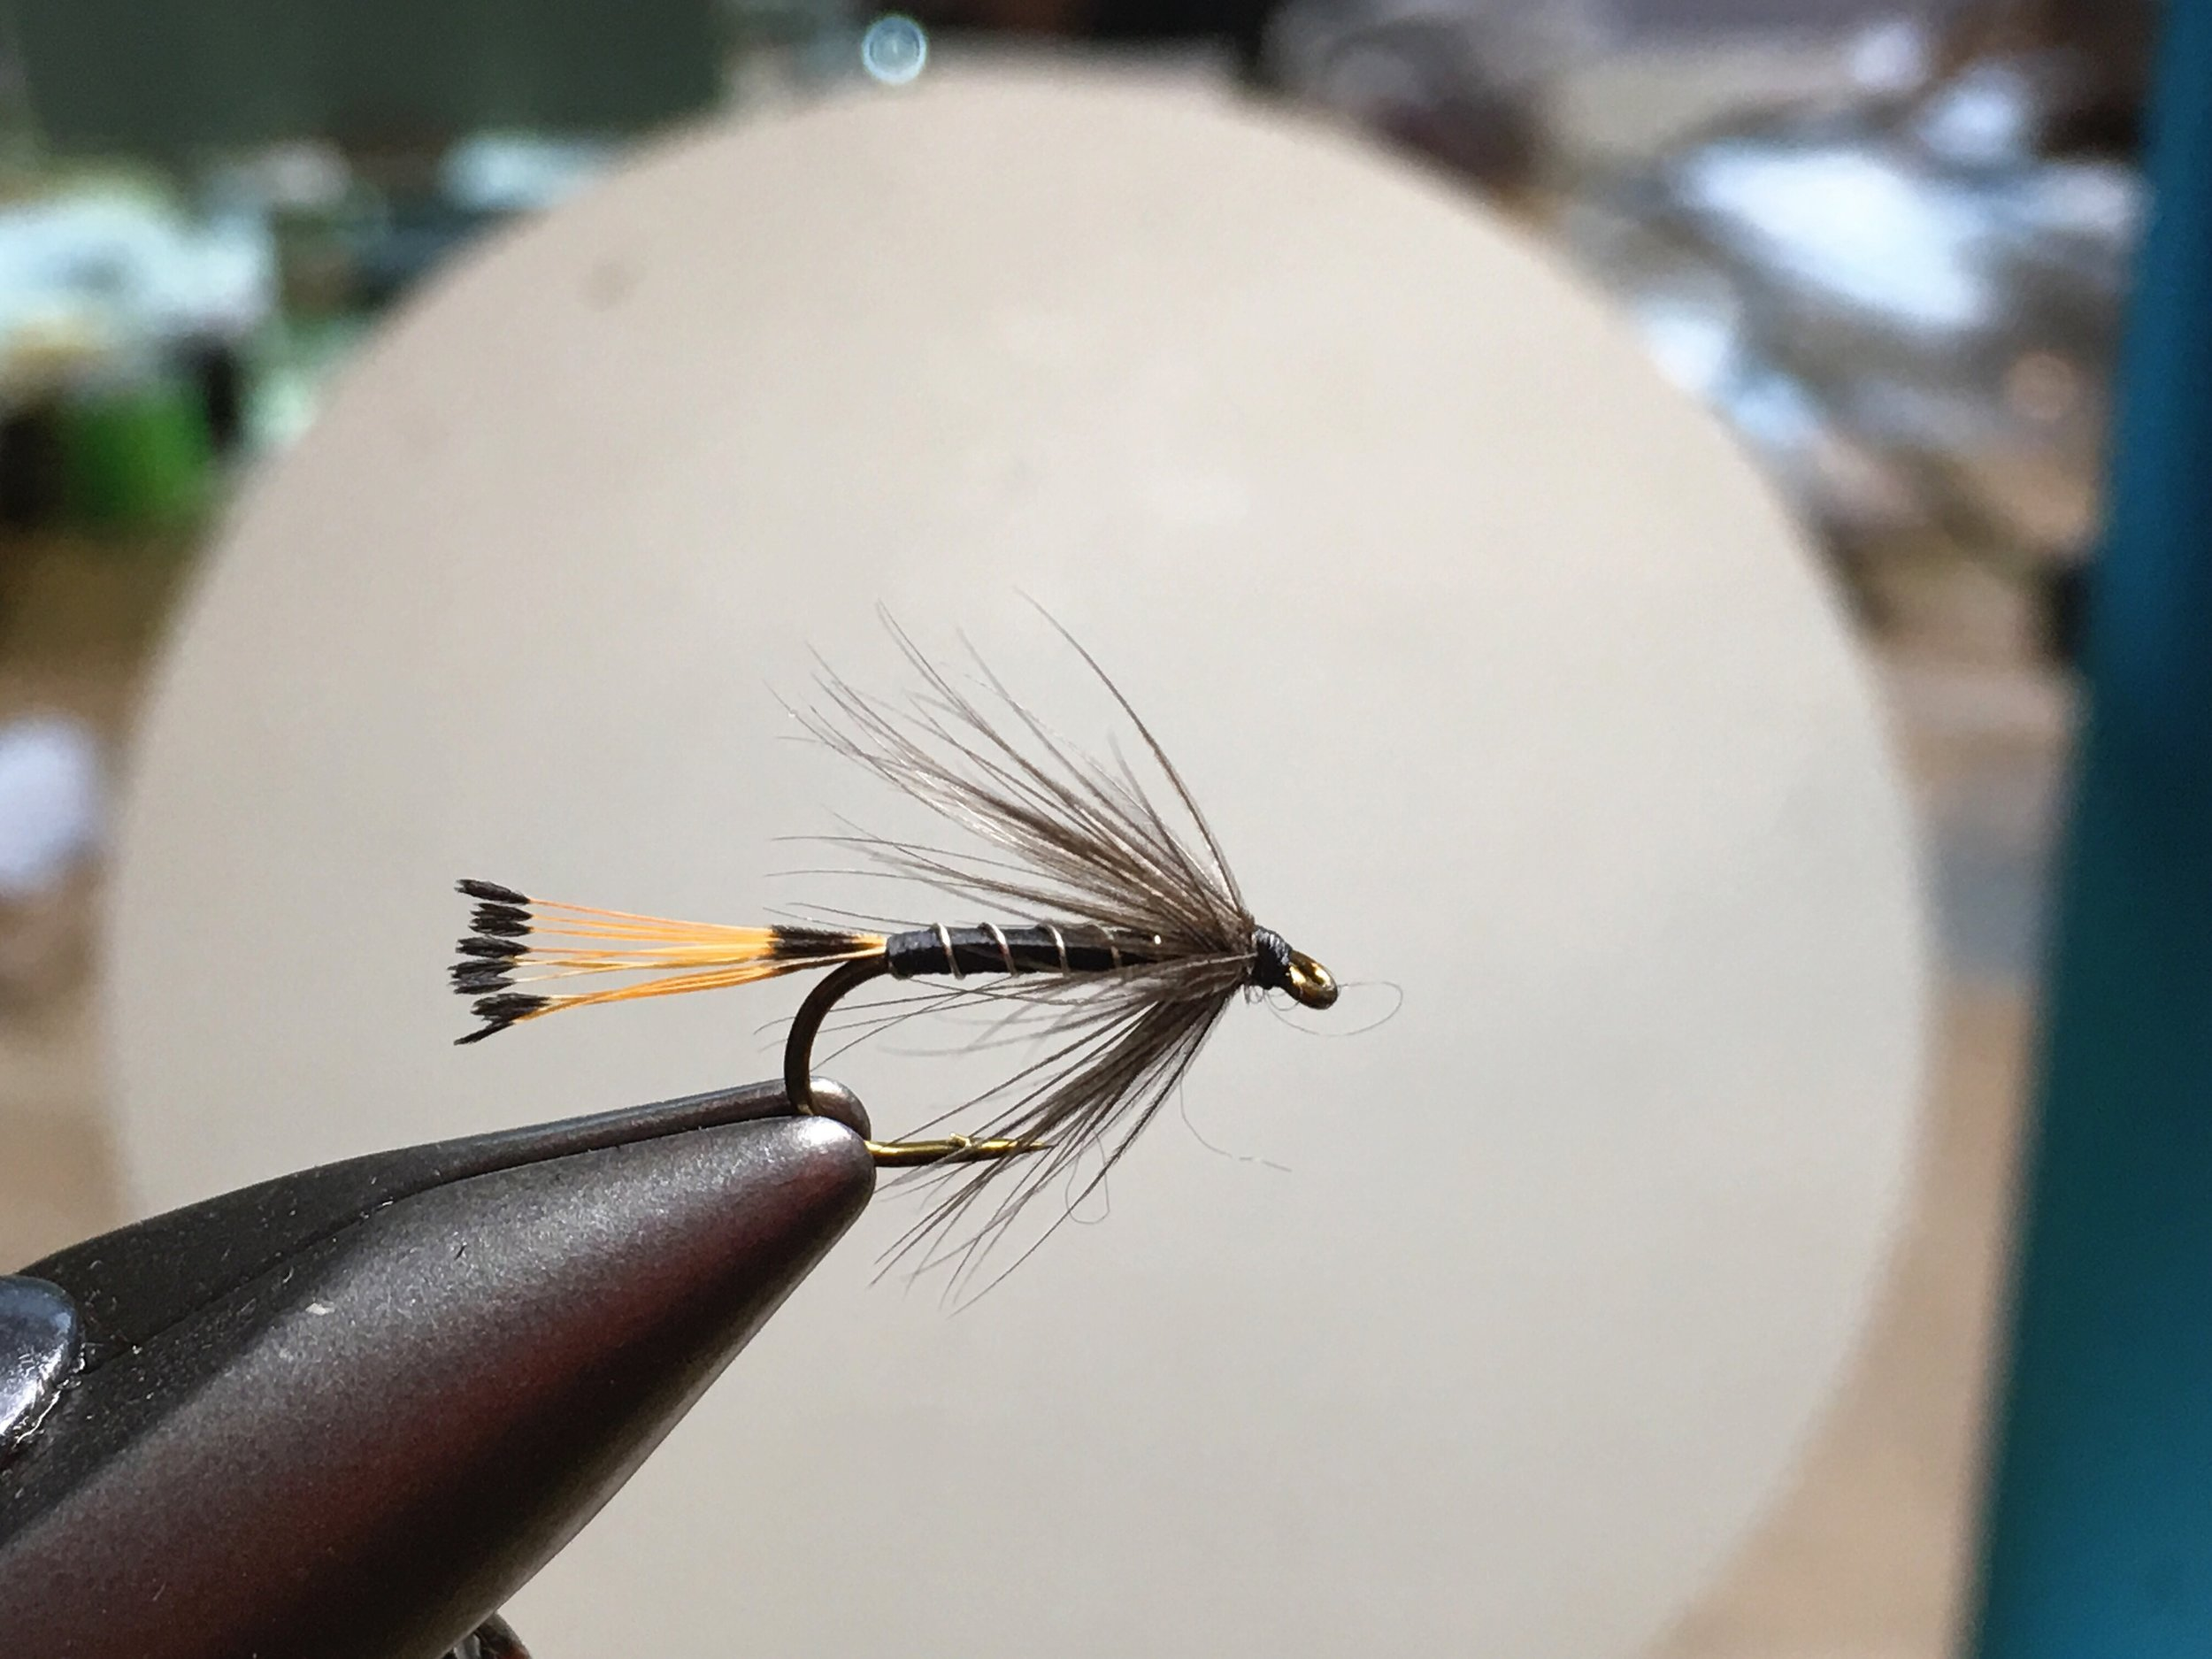 The traditional Black Pennell Wet Fly.